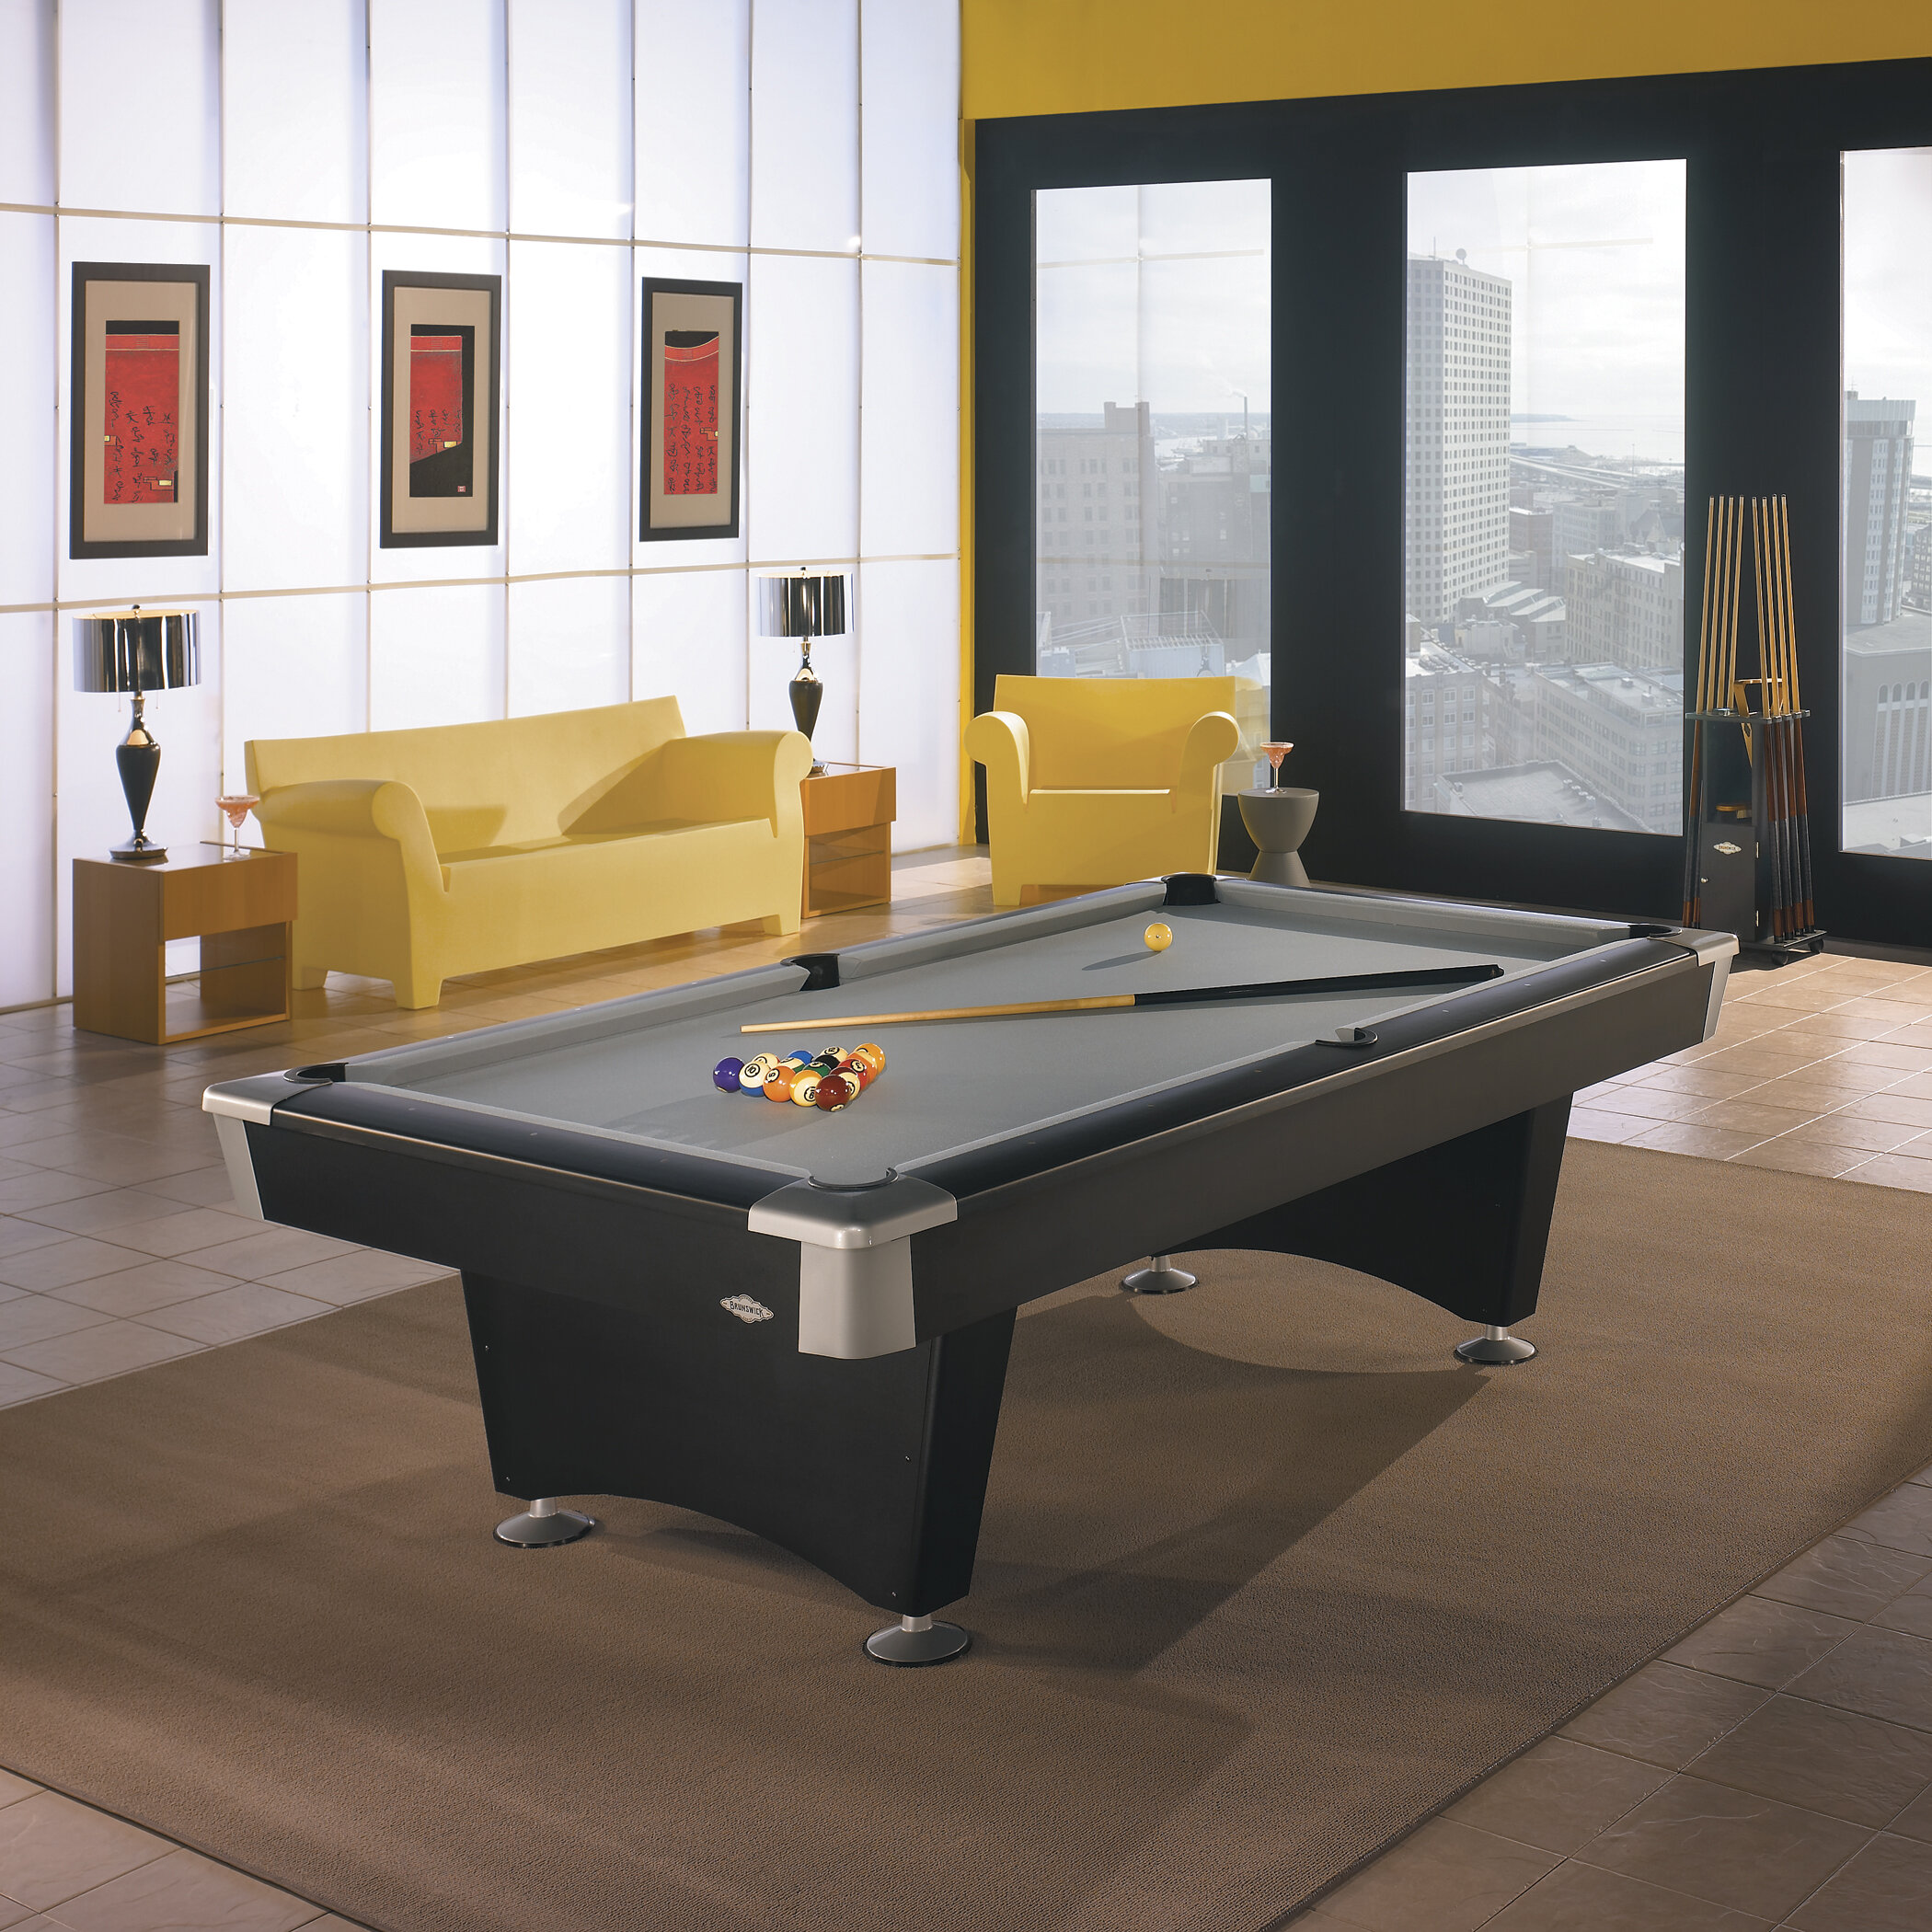 Groovy 8 Foot Slate Pool Tables Youll Love In 2019 Wayfair Download Free Architecture Designs Scobabritishbridgeorg